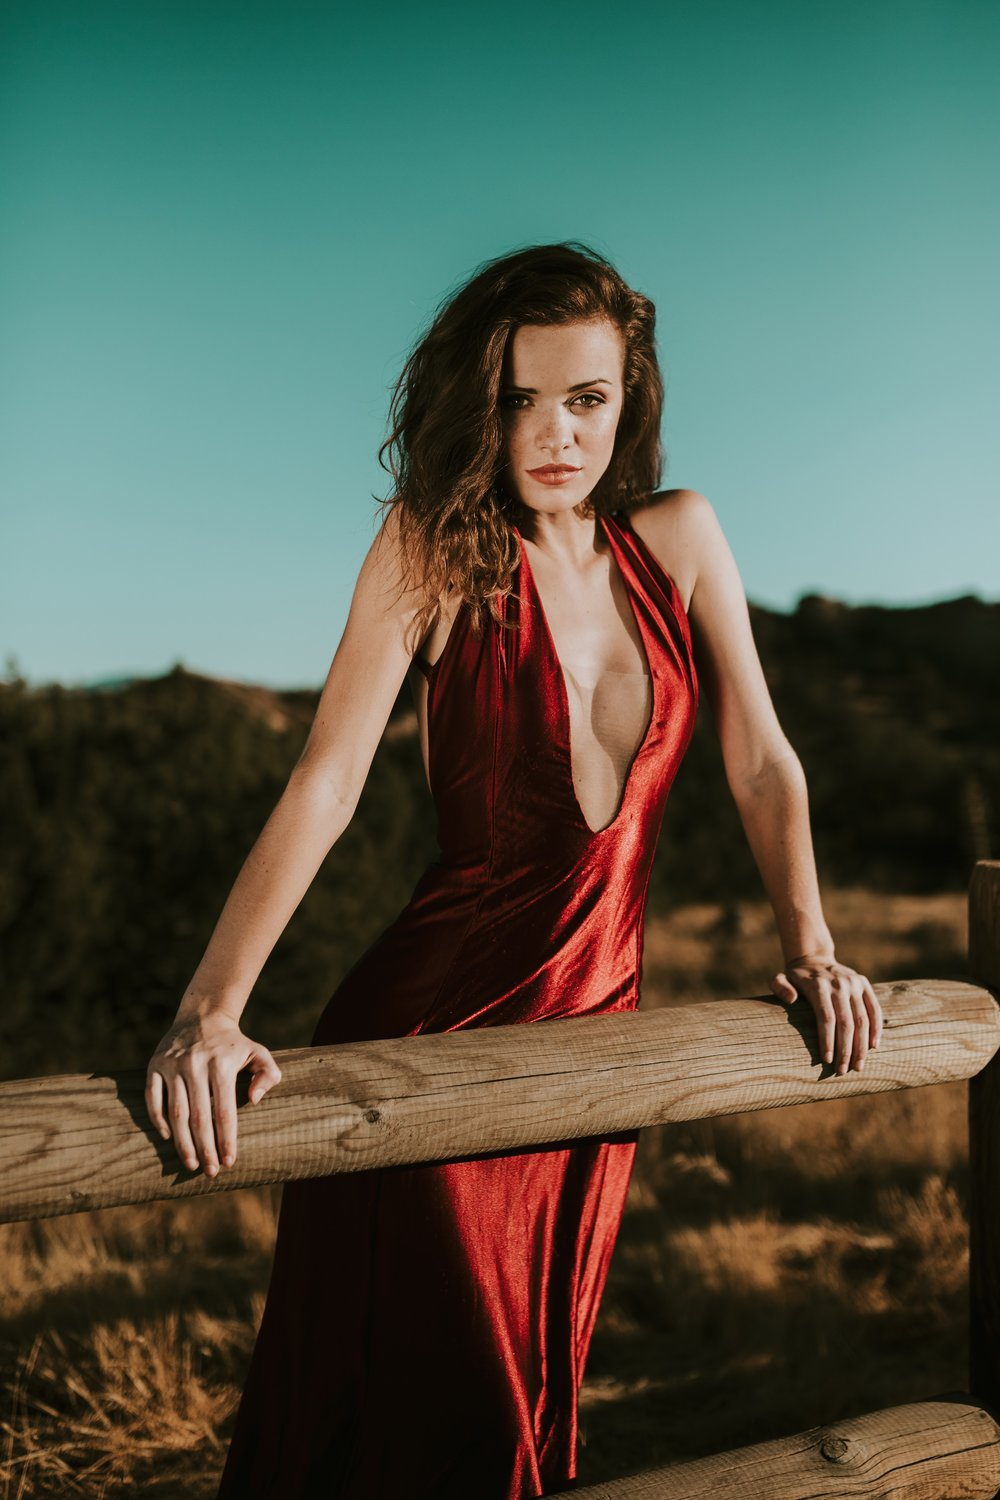 Jazlyn Editorial Shoot Vasquez Rocks (90 of 104).jpg